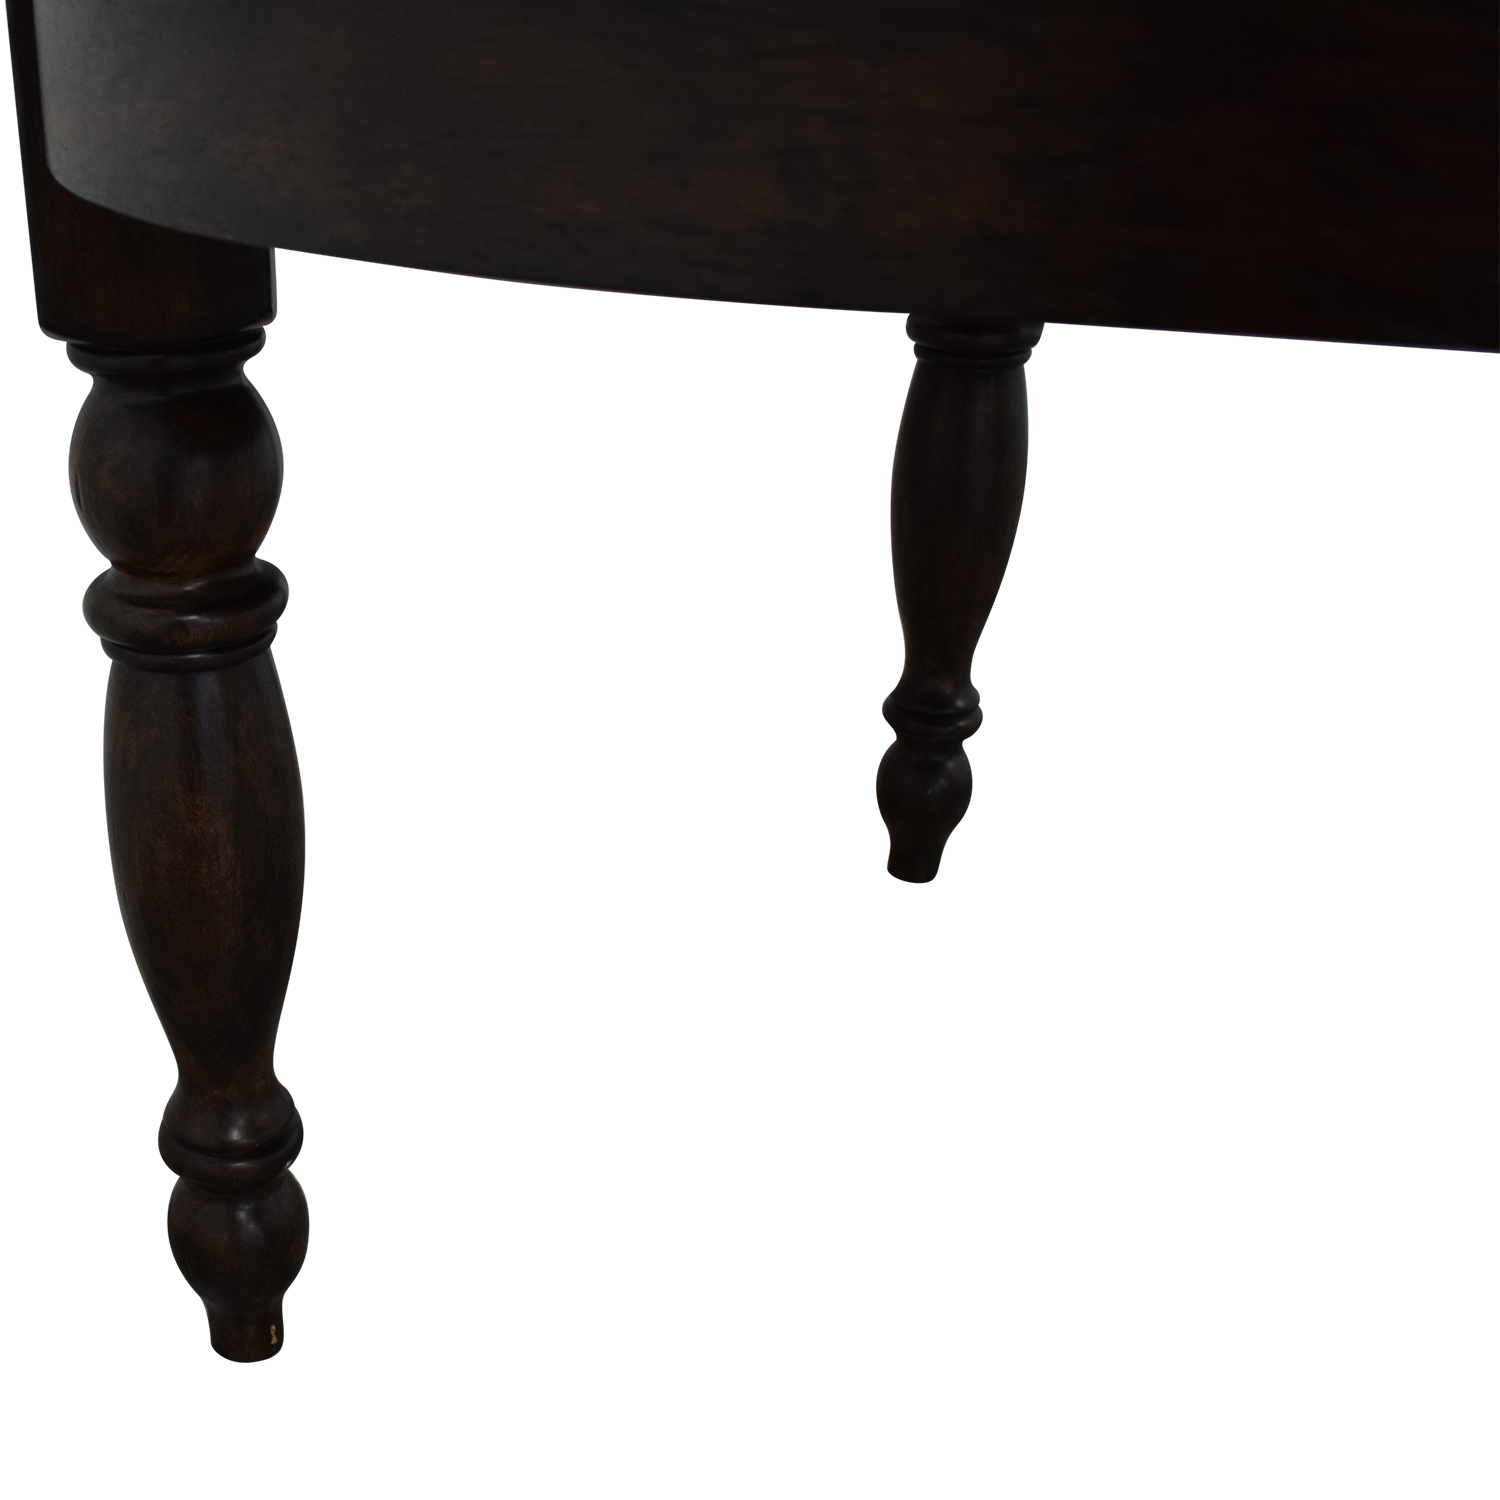 Pottery Barn Pottery Barn Evelyn Extending Round Dining Table dark brown